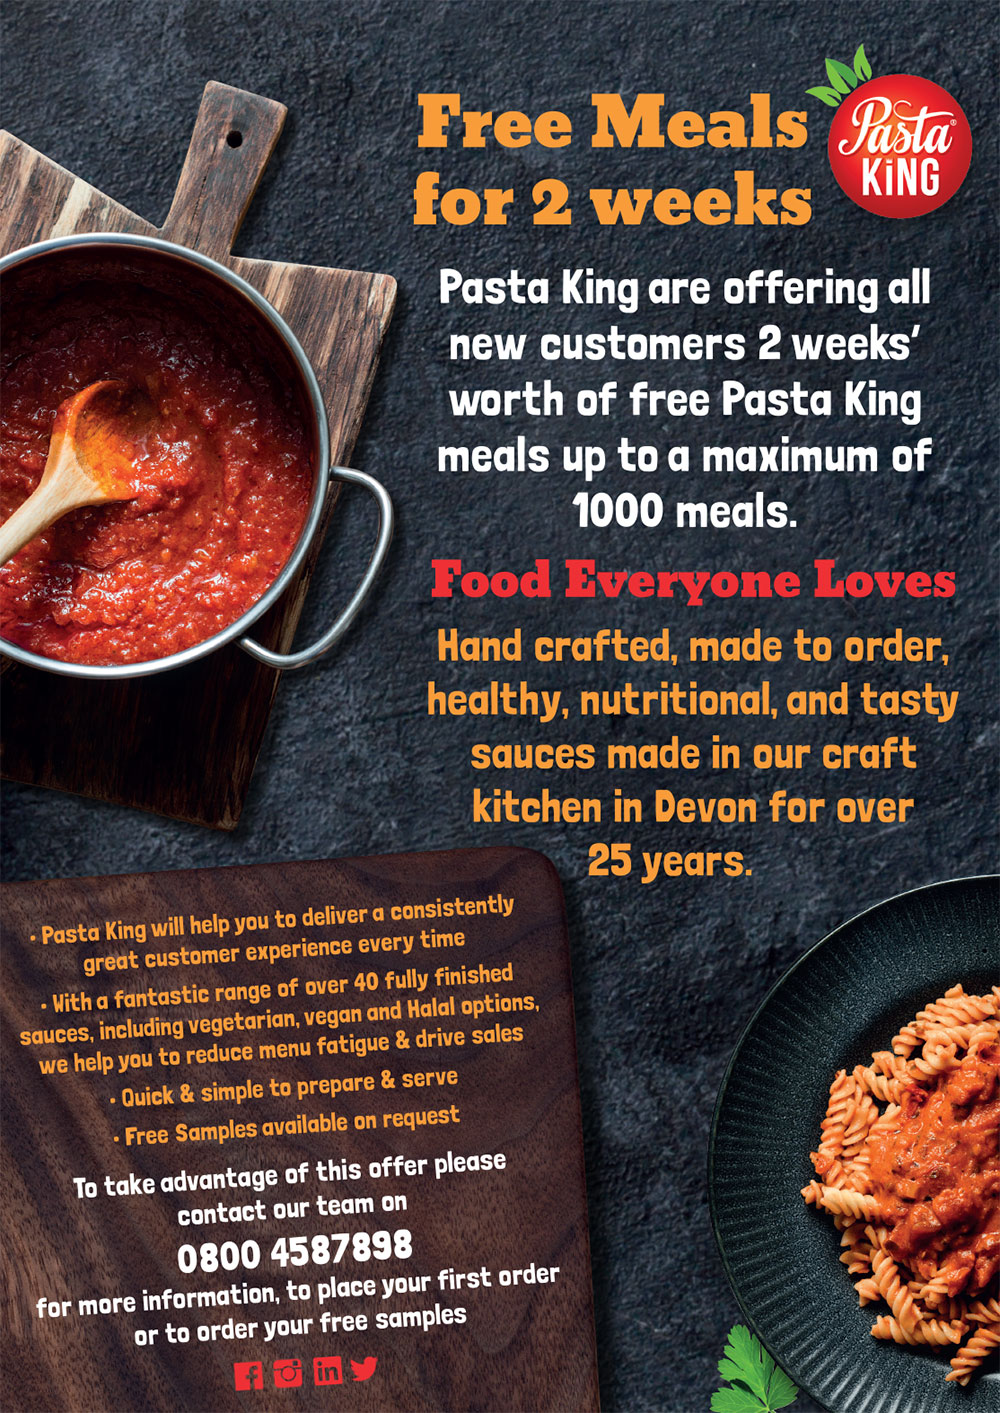 Free meals for two weeks